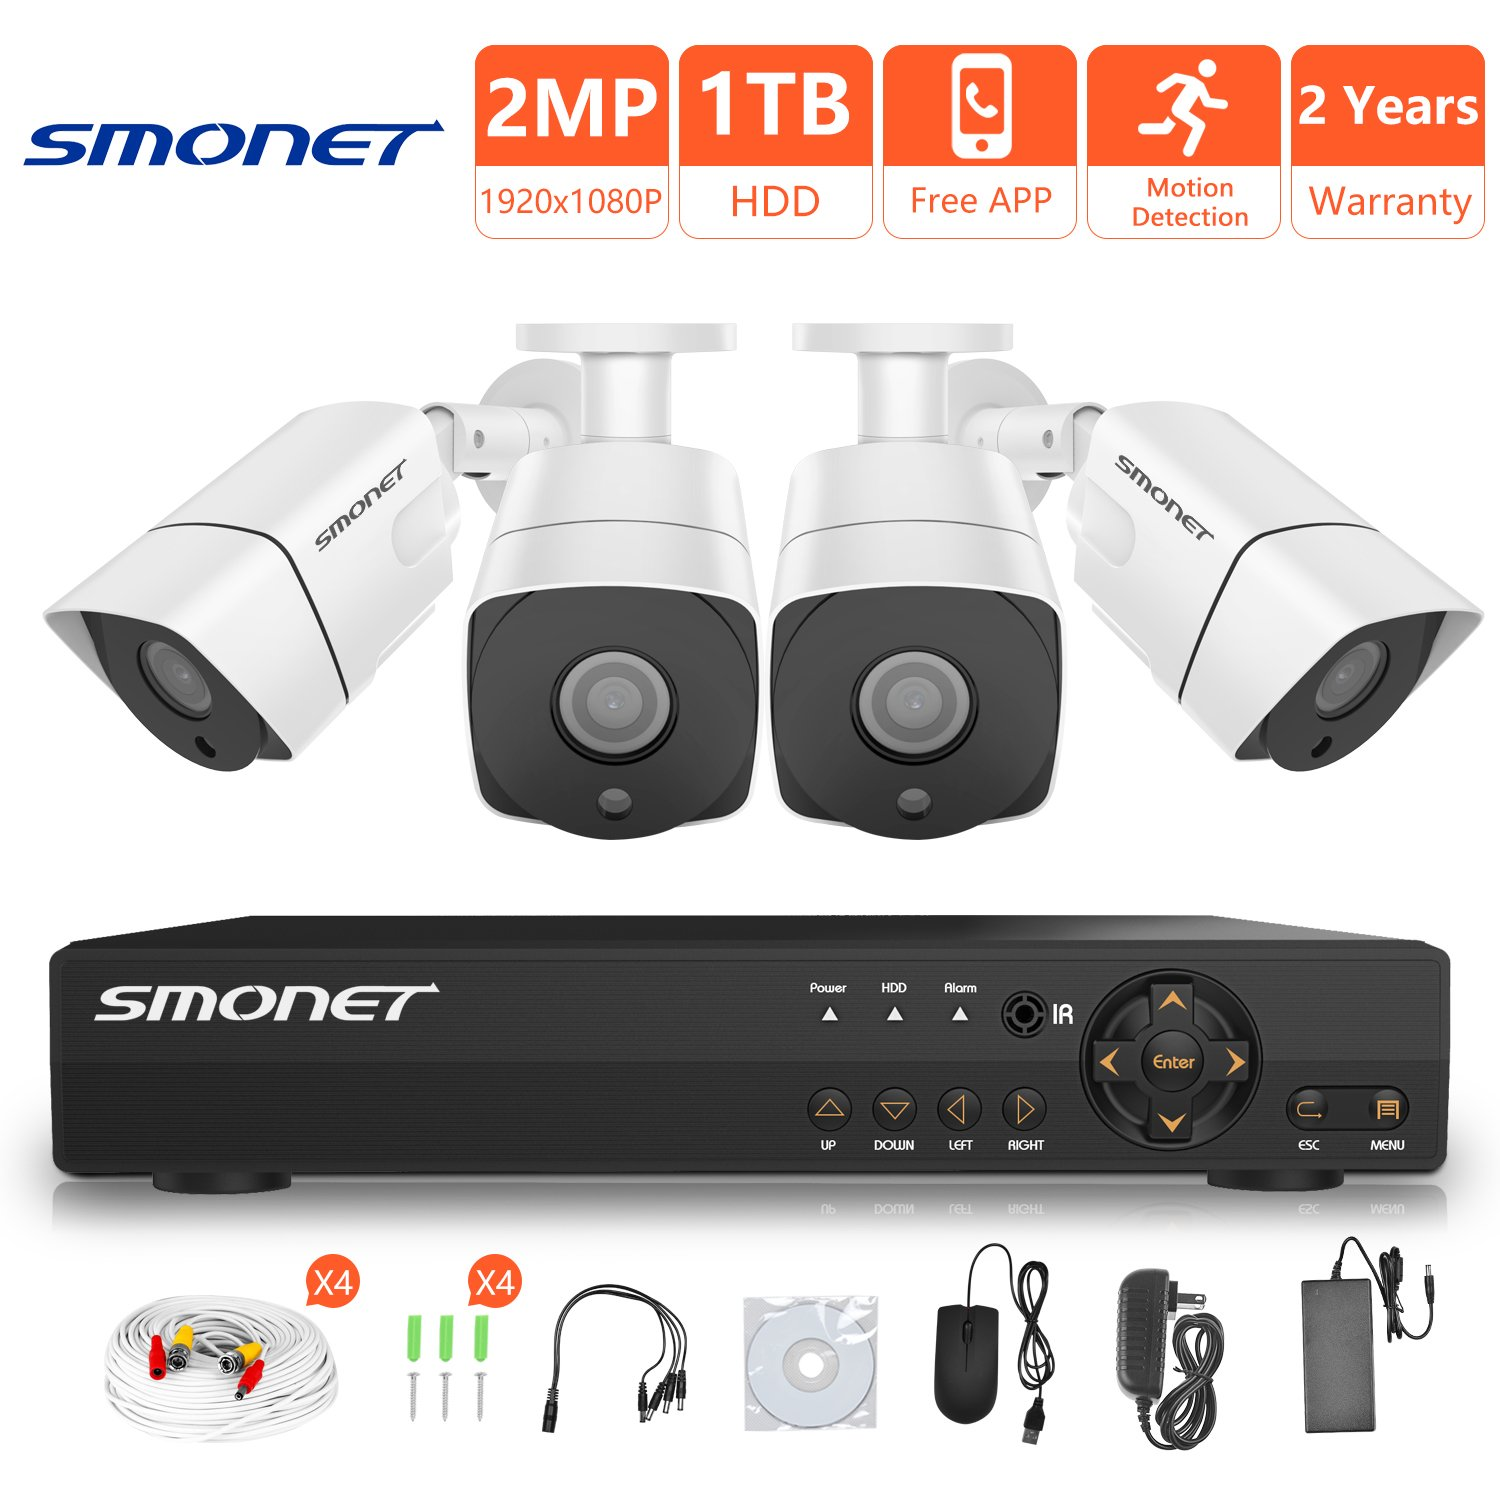 [FULL HD]1080P Wired Security Camera System,SMONET 4 Channel 2MP Outdoor/Indoor Surveillance System with 1TB HDD(AHD CCTV DVR Kits), 4pcs Weatherproof Security Cameras,Nigth Vision,P2P, Remote View